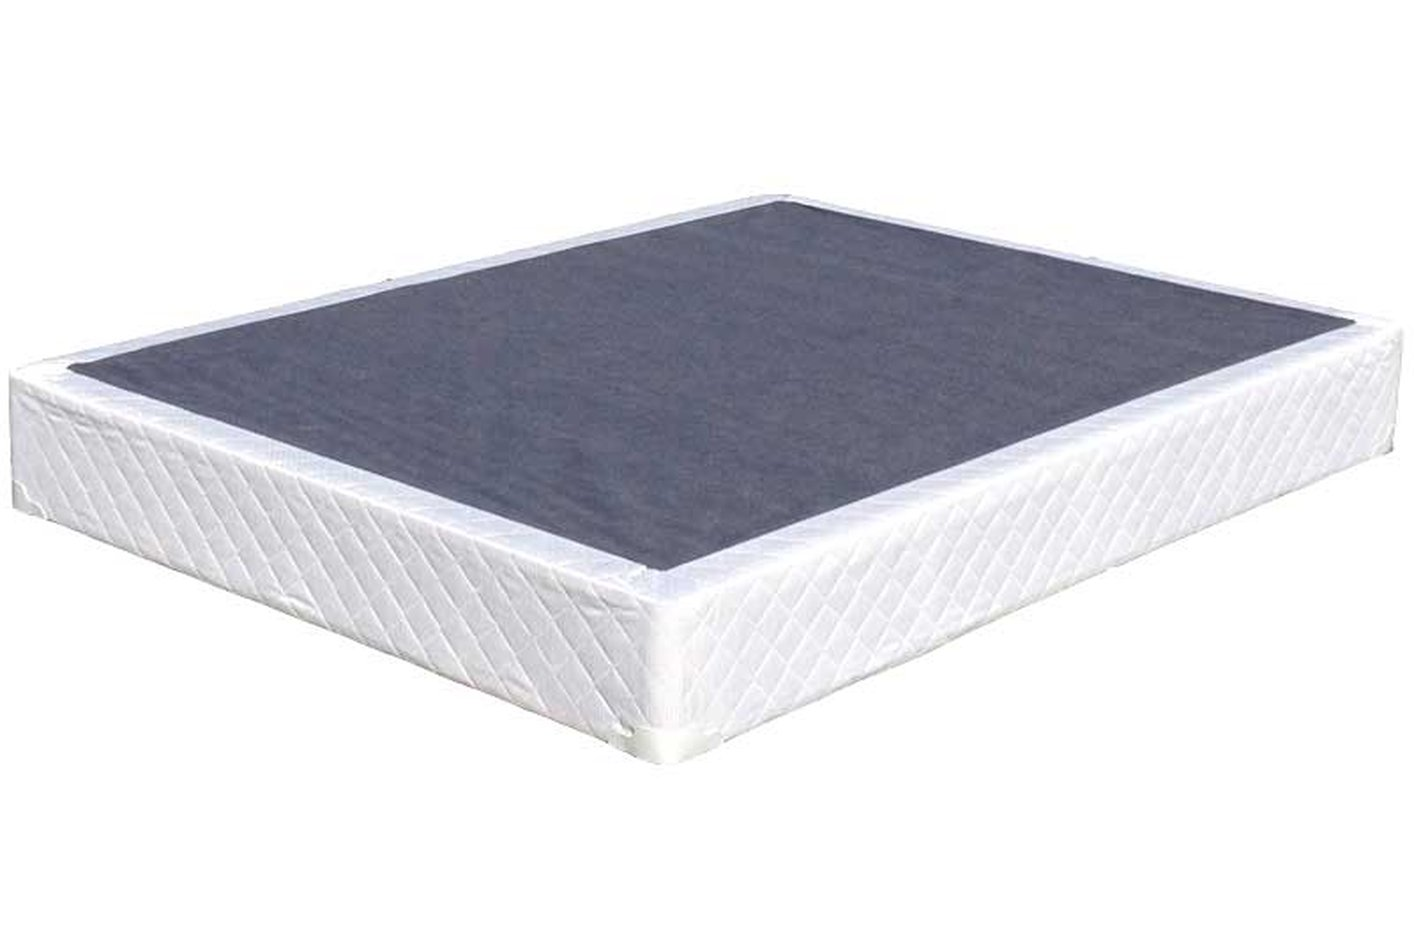 Kingdom KINGDOM BOX SPRING FULL White Fabric Full Size Box